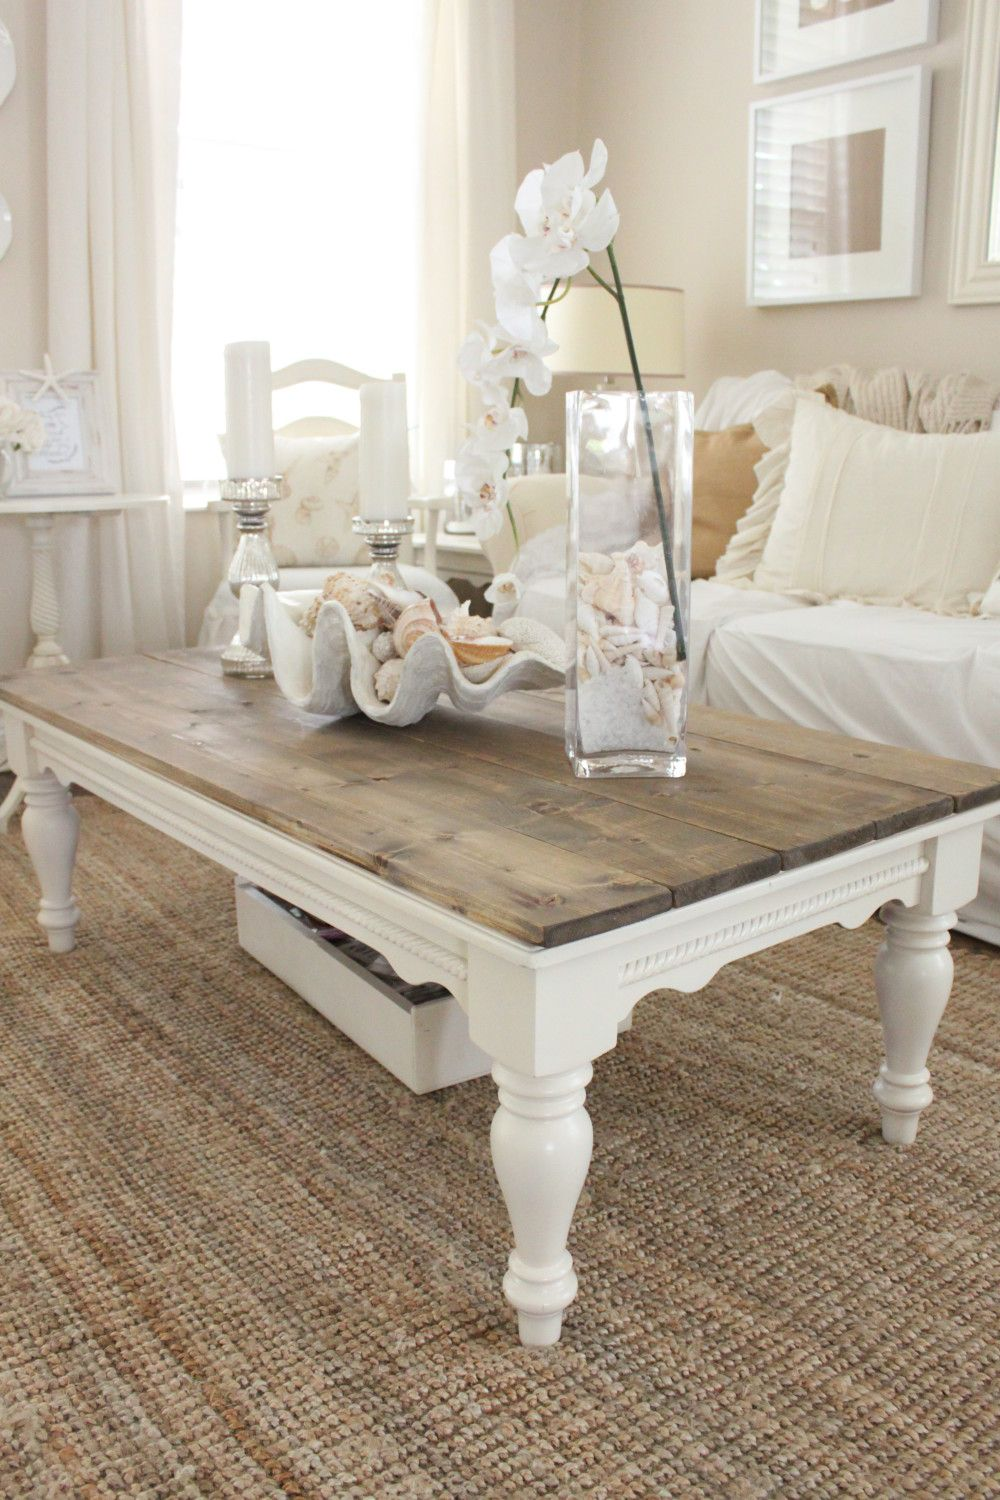 Diy Distressed Wood Top Coffee Table Farmhouse Decor Living